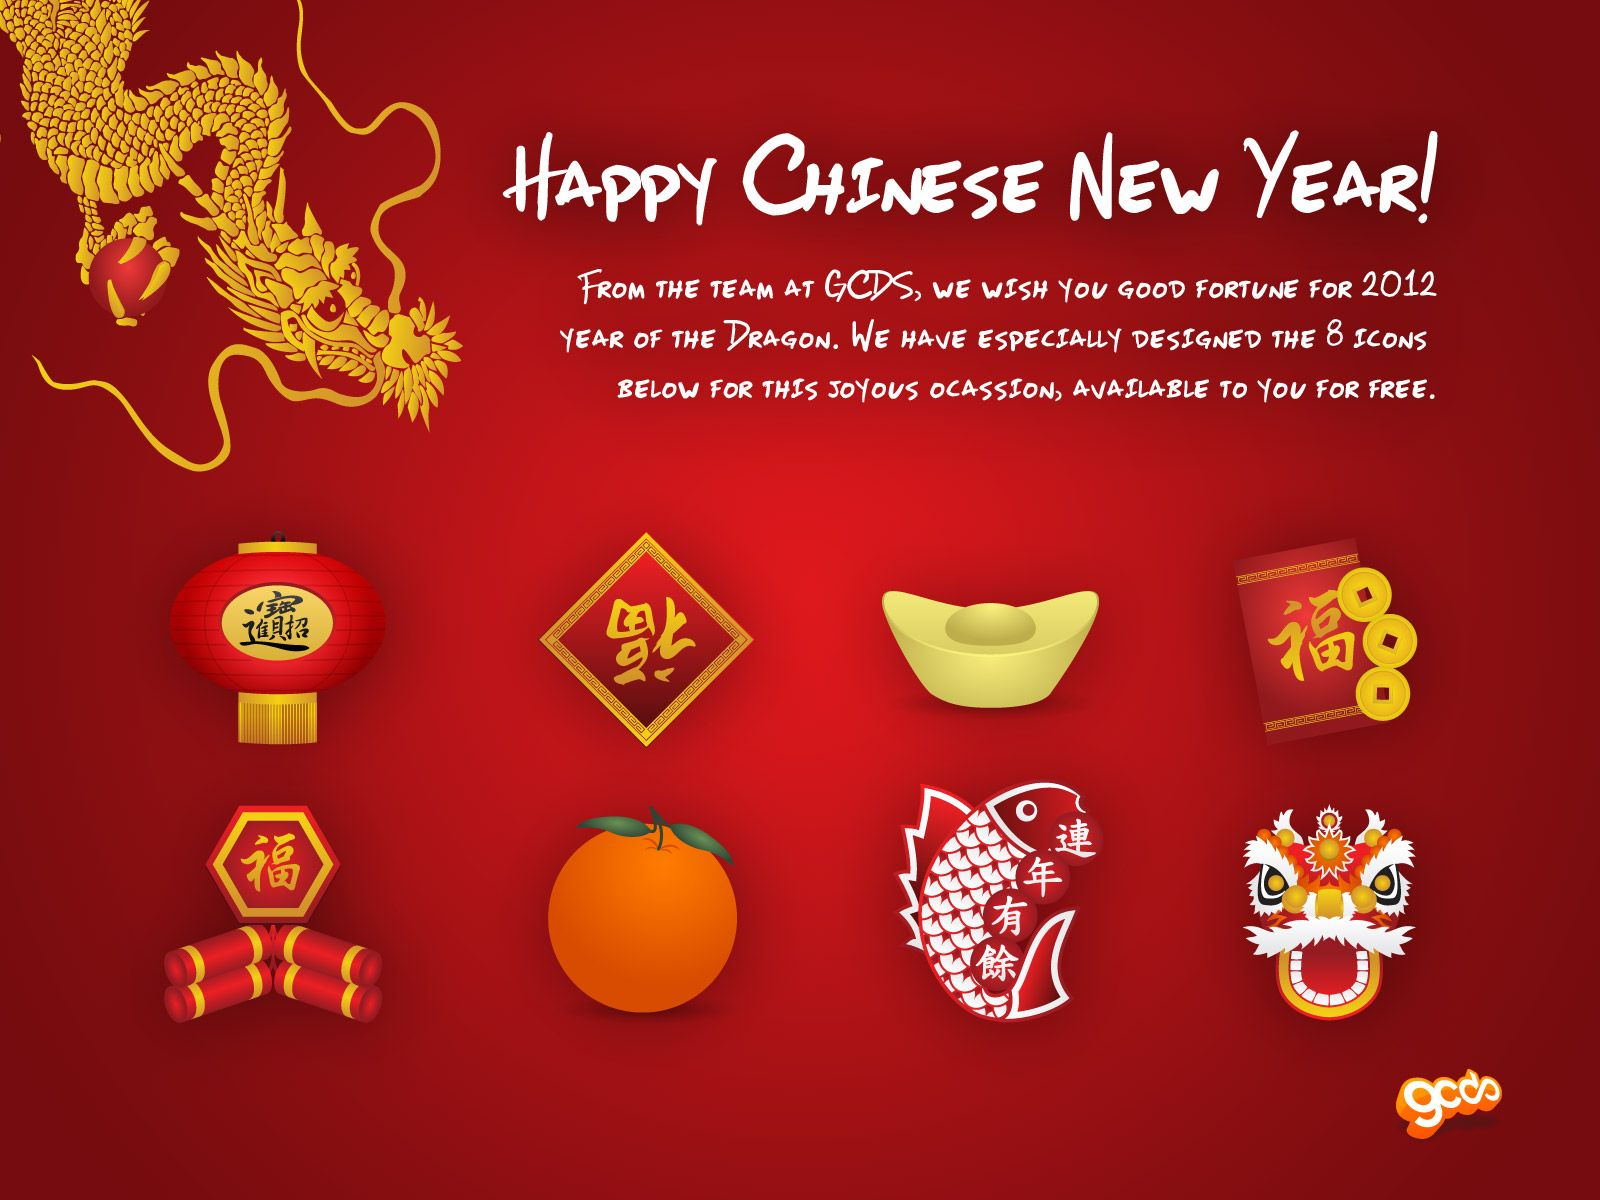 Happy Chinese New Year For 2012 Year Of The Dragon Click On The Image To Get The Z Happy Chinese New Year Chinese New Year Wishes Chinese New Year Greeting